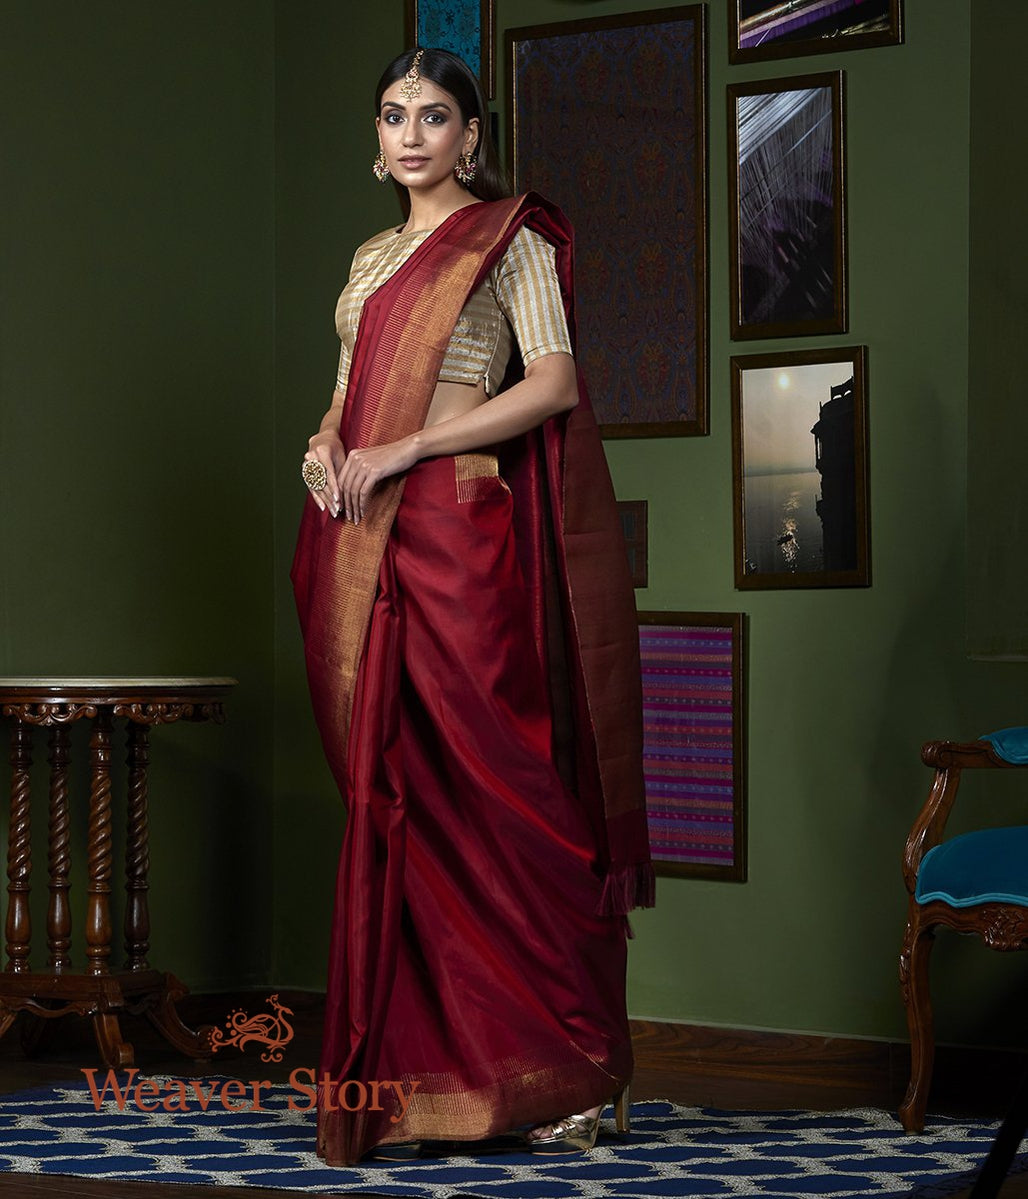 Handwoven Maroon Kanjivaram Saree with Pure Zari Border Stripes